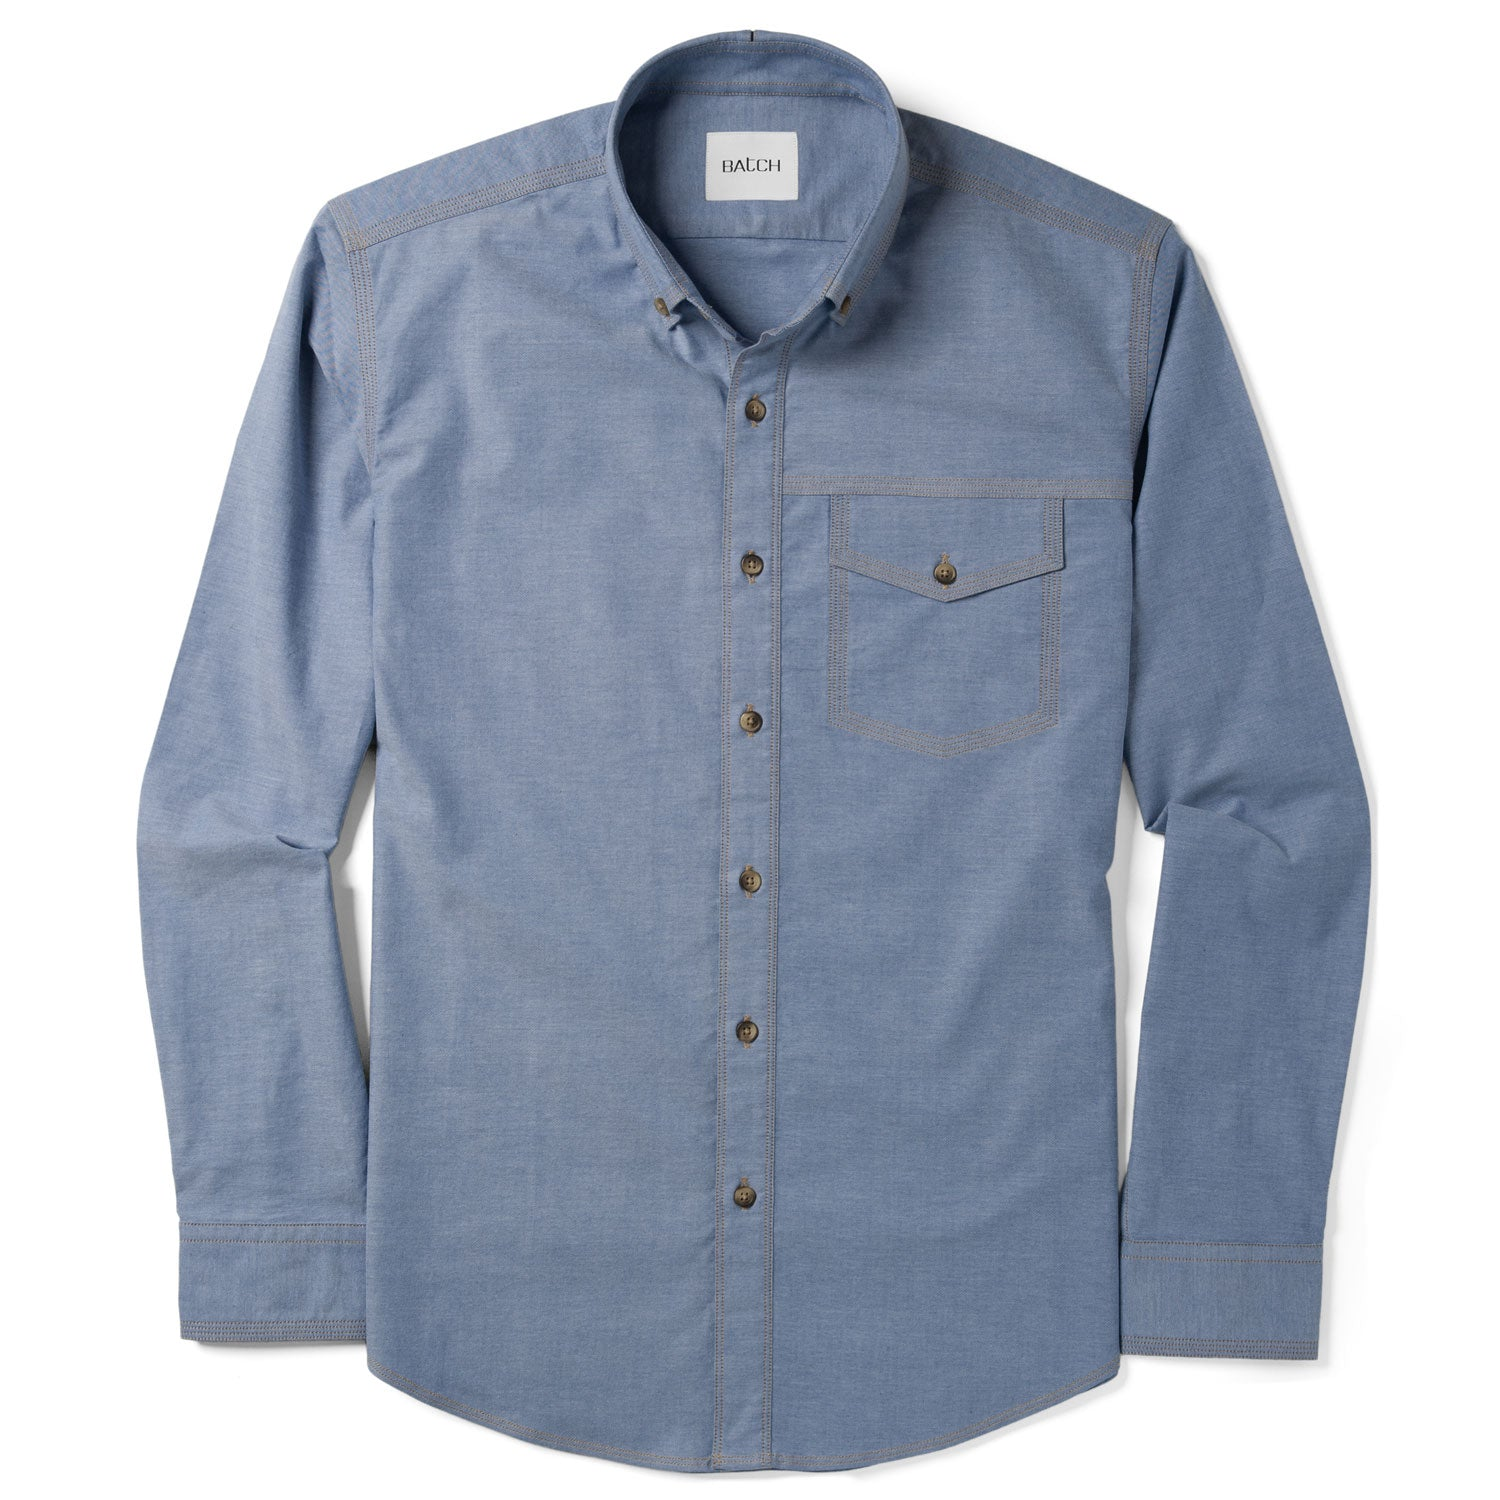 Author Casual Shirt One Pocket – Harbor Blue Stretch Oxford